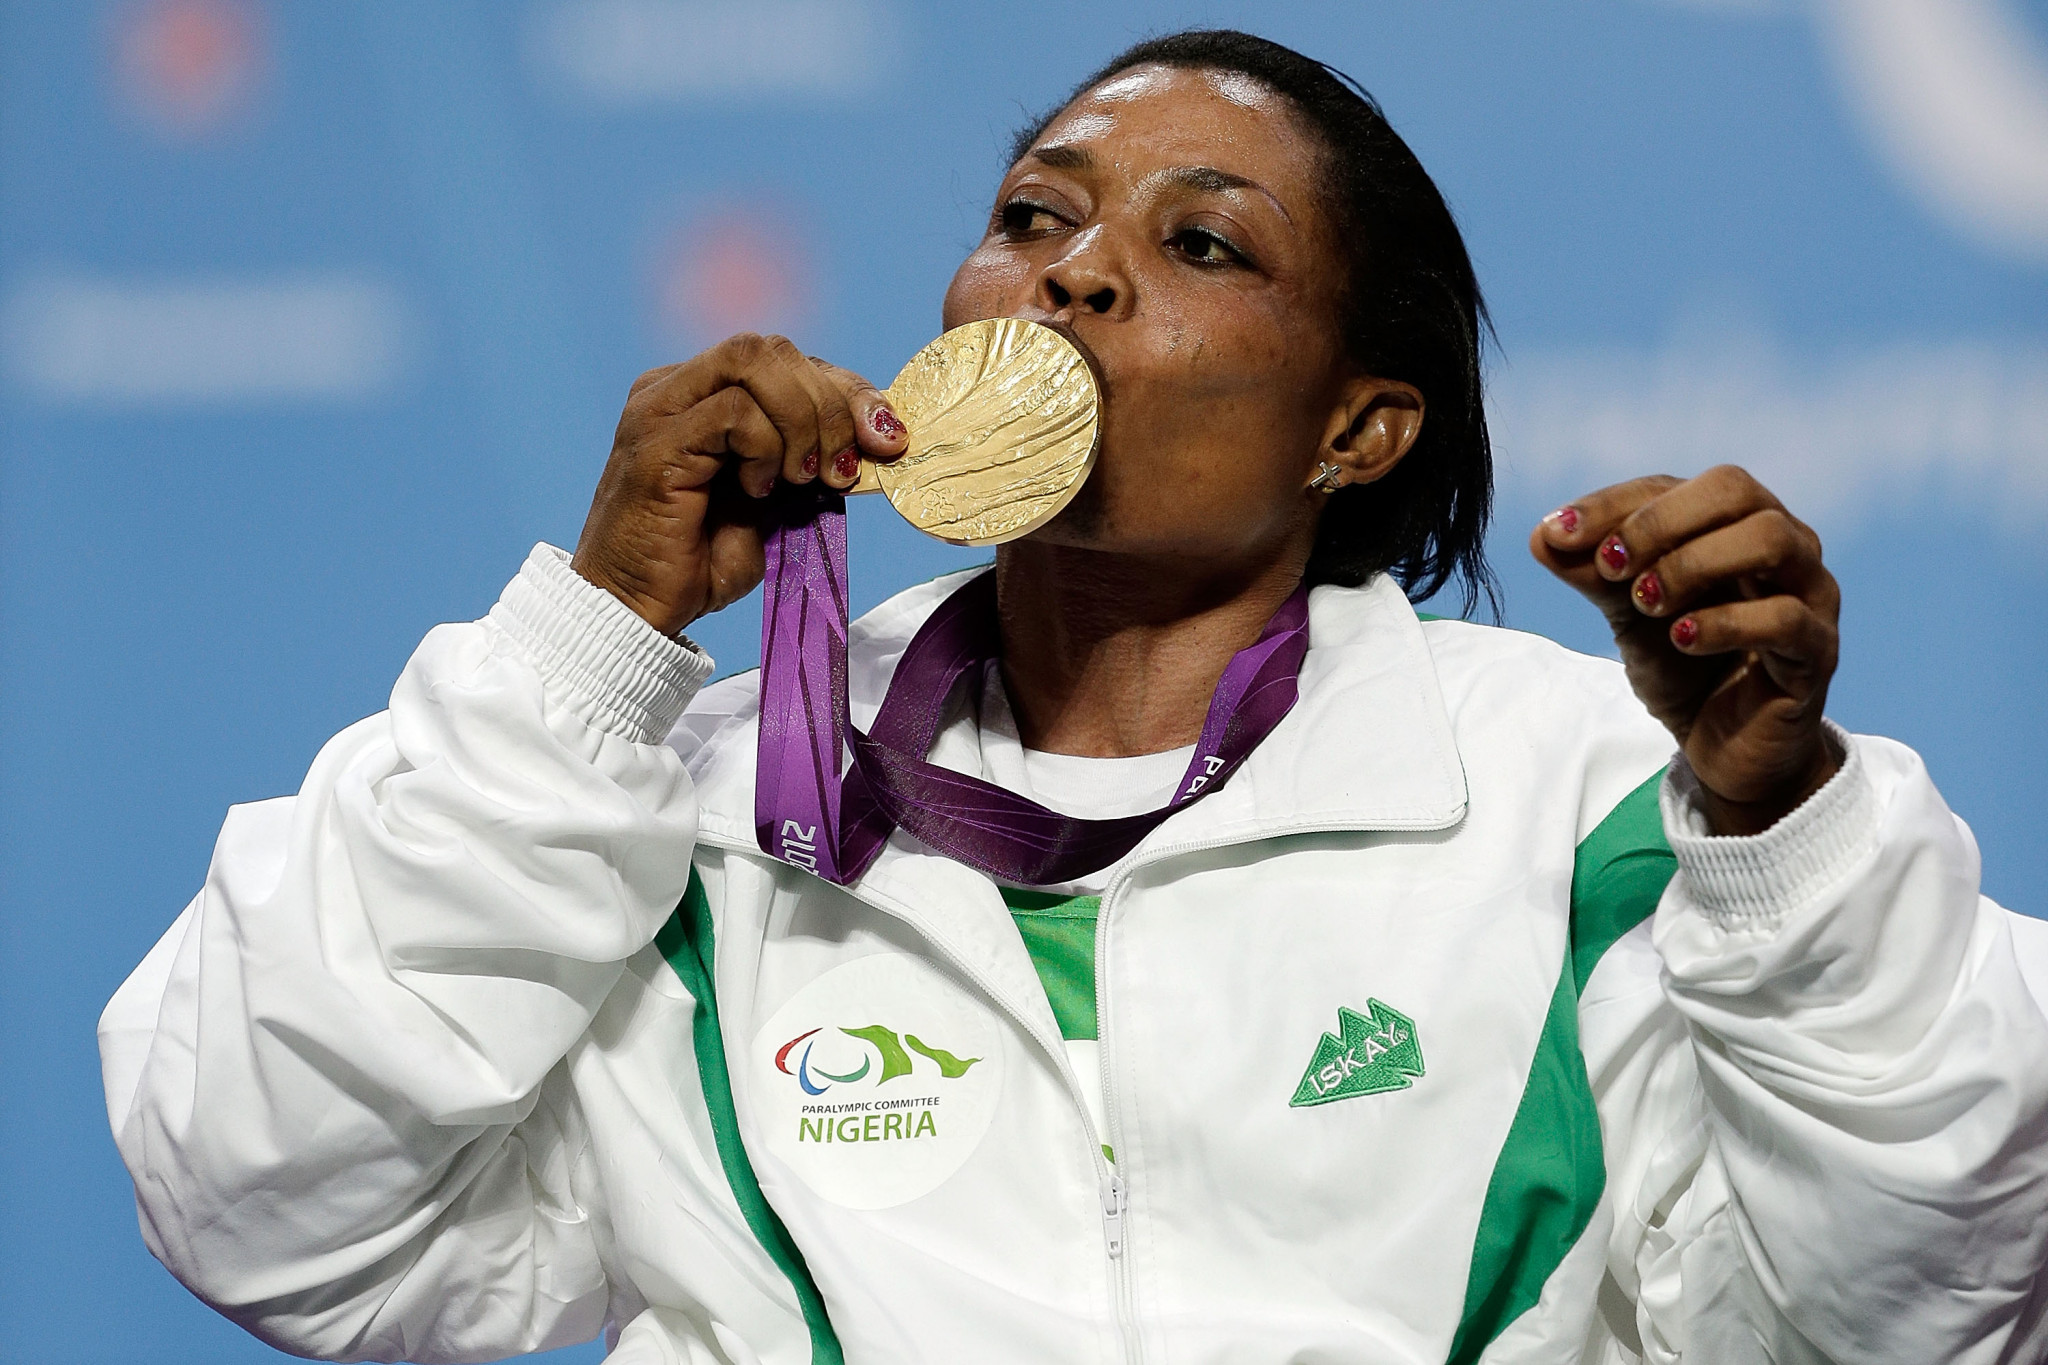 Paralympic powerlifting champion at London 2012 Esther Oyema has been banned for four years for committing an anti-doping rule violation ©Getty Images